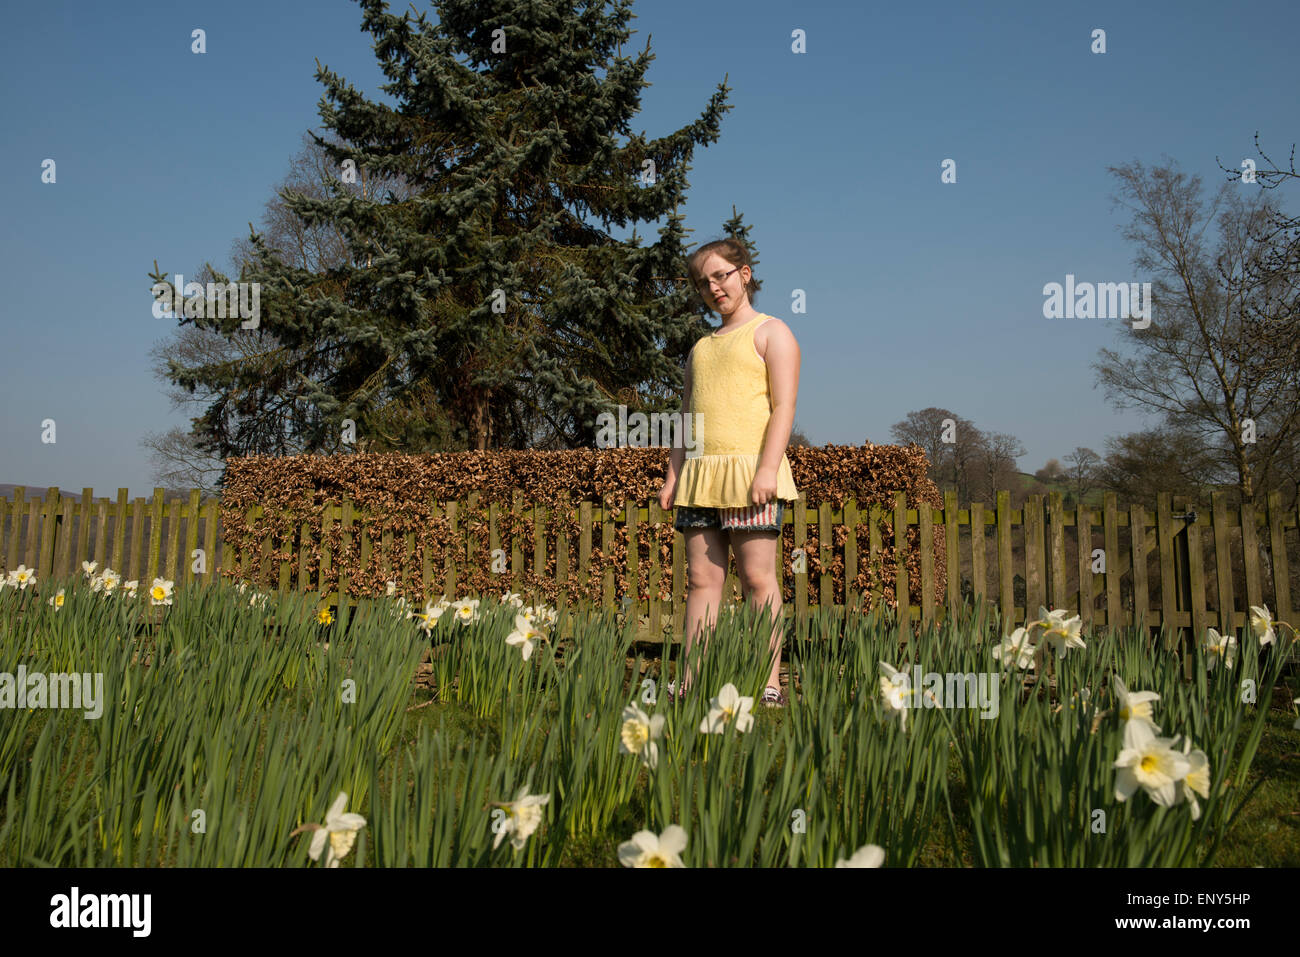 GIRL IN A YELLOW DRESS FEATURED IN THE DAFFODILS AT BOLTON ABBEY - Stock Image